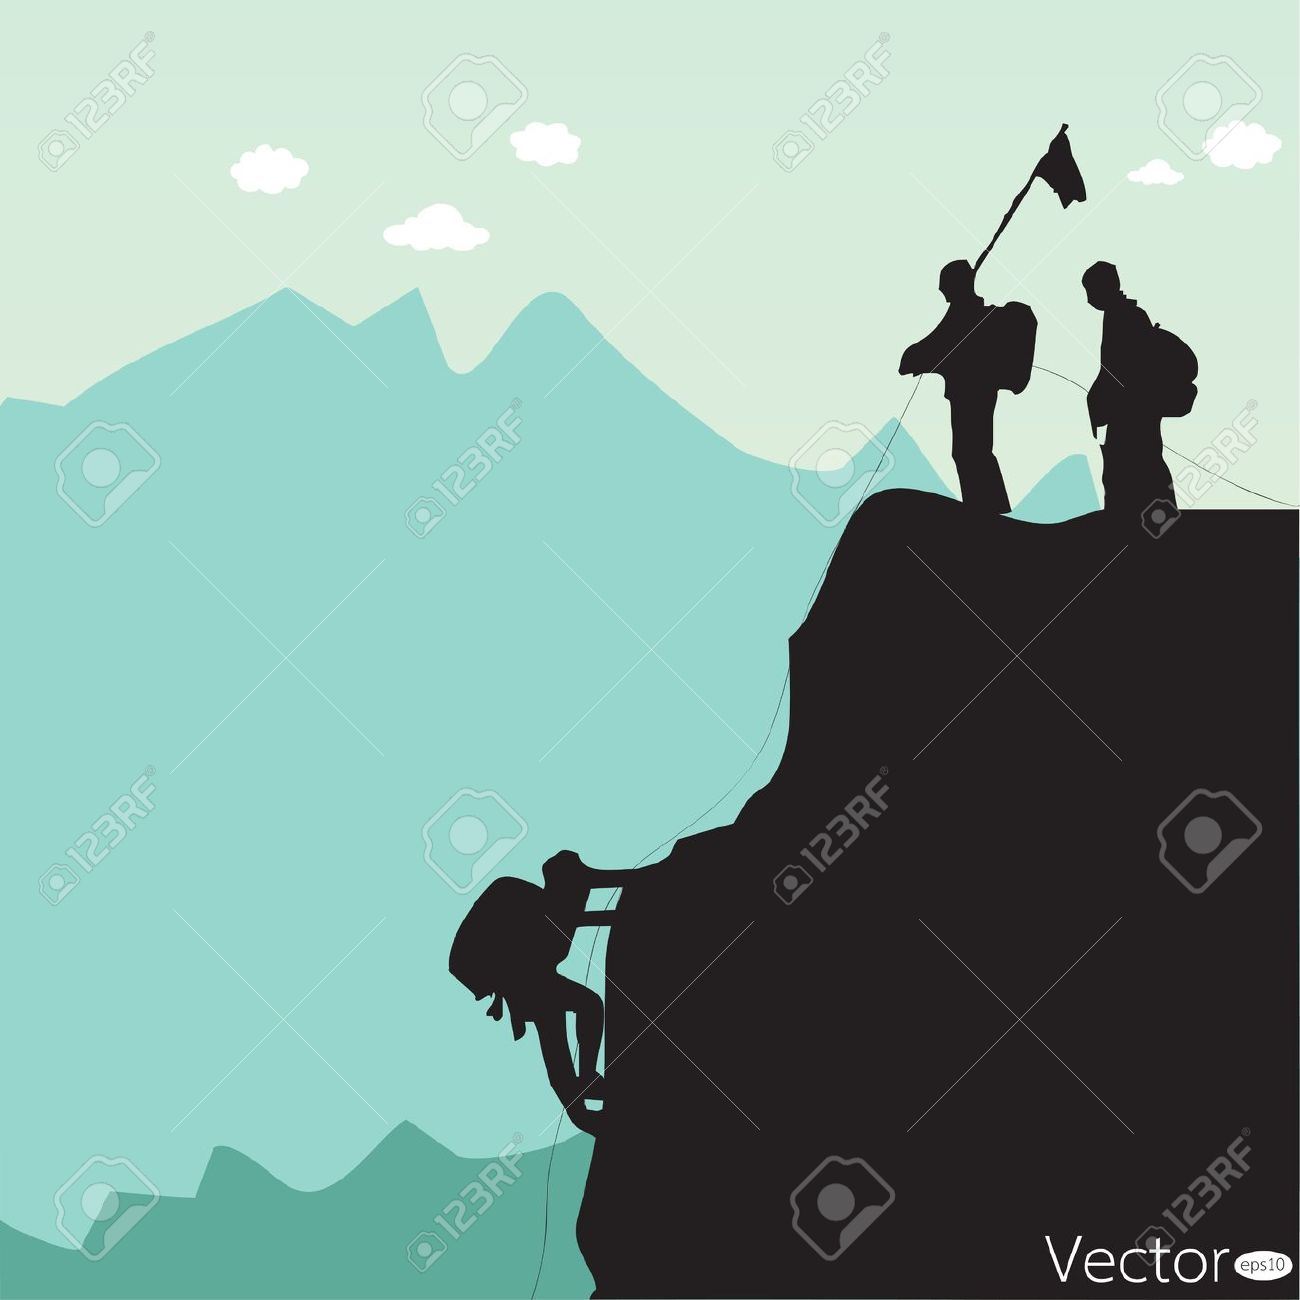 Summit clipart mountain skiing Royalty Stock Climbing Royalty